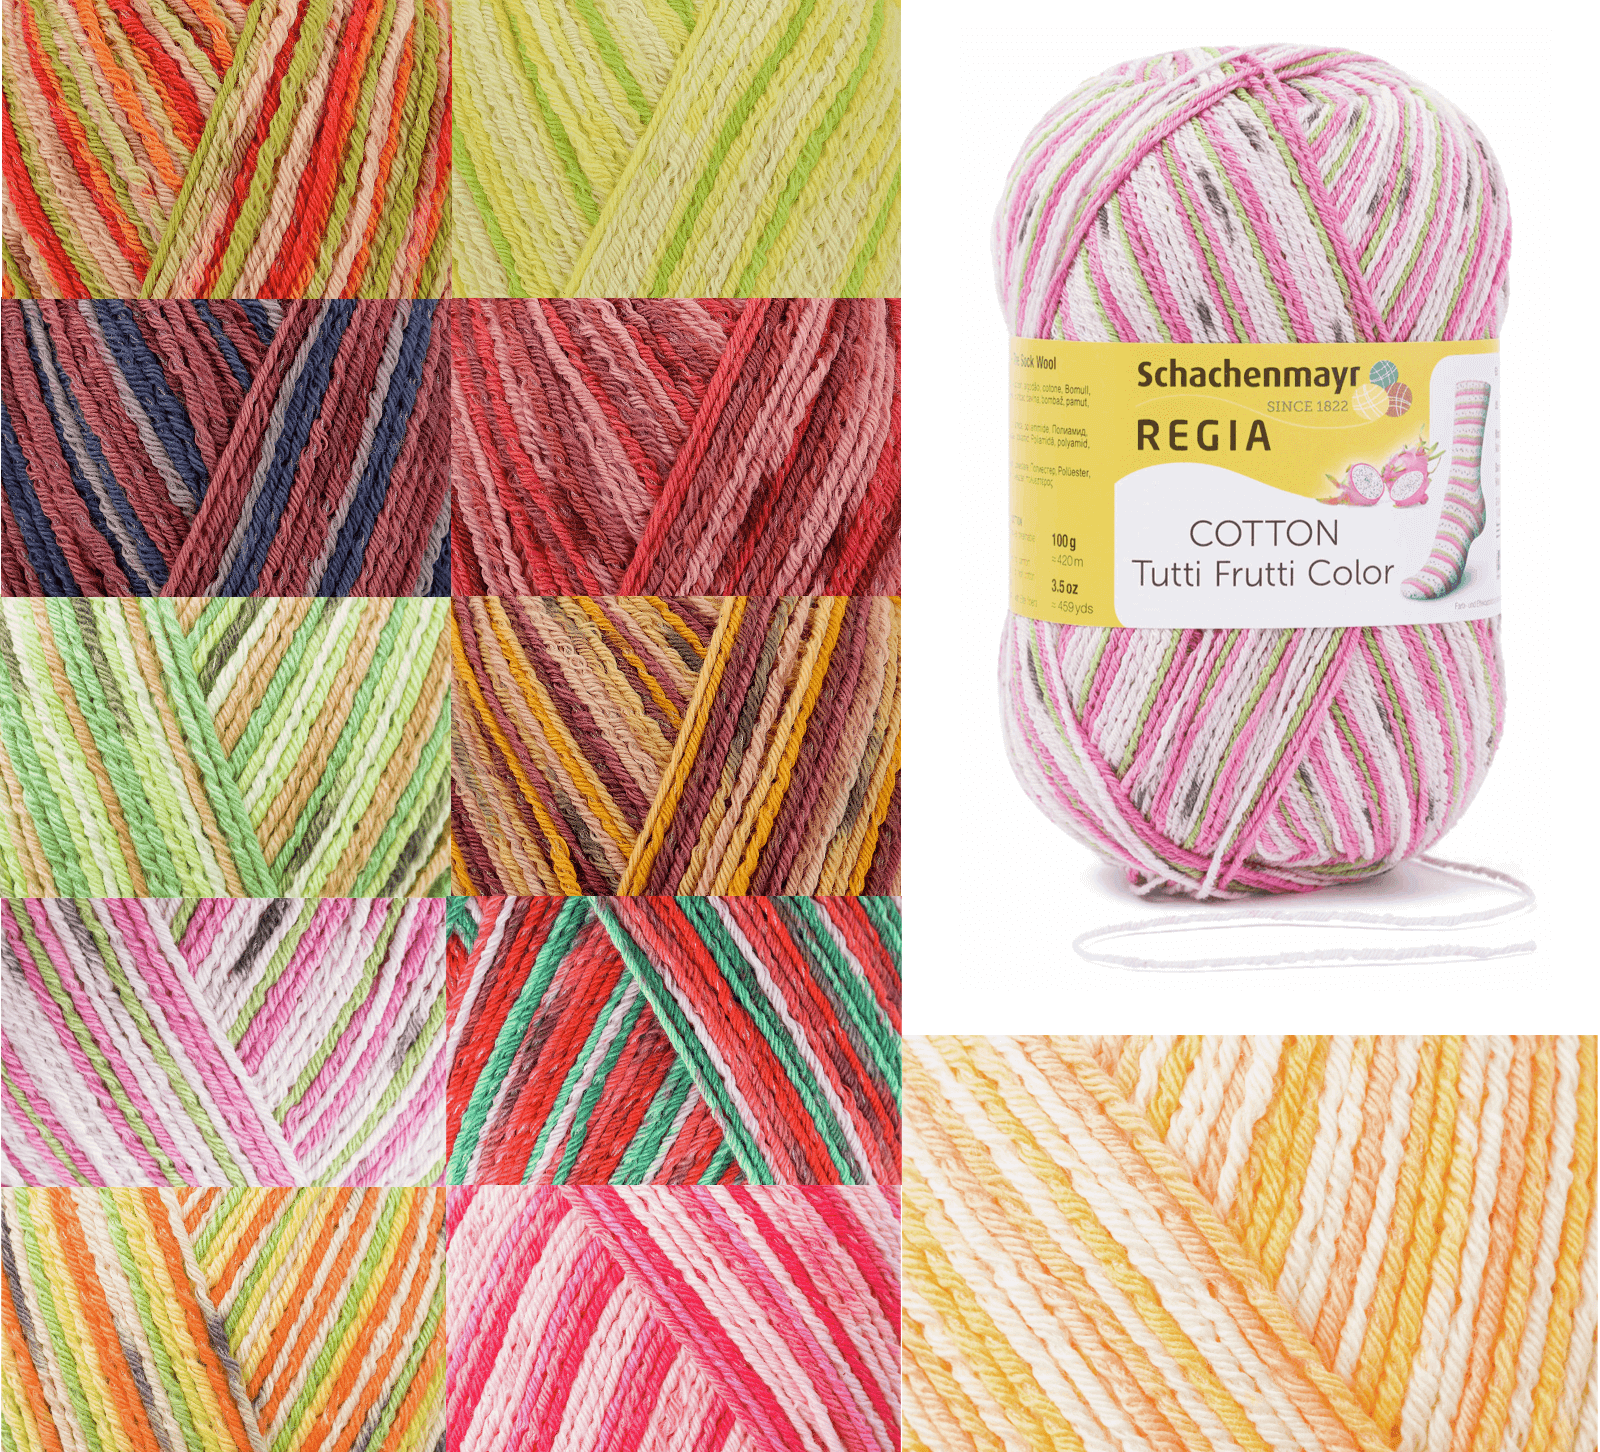 Regia Cotton Tutti Fruitti 4 PLY Knitting Crochet Knit Yarn Craft Wool 100g Ball 2426 Apple